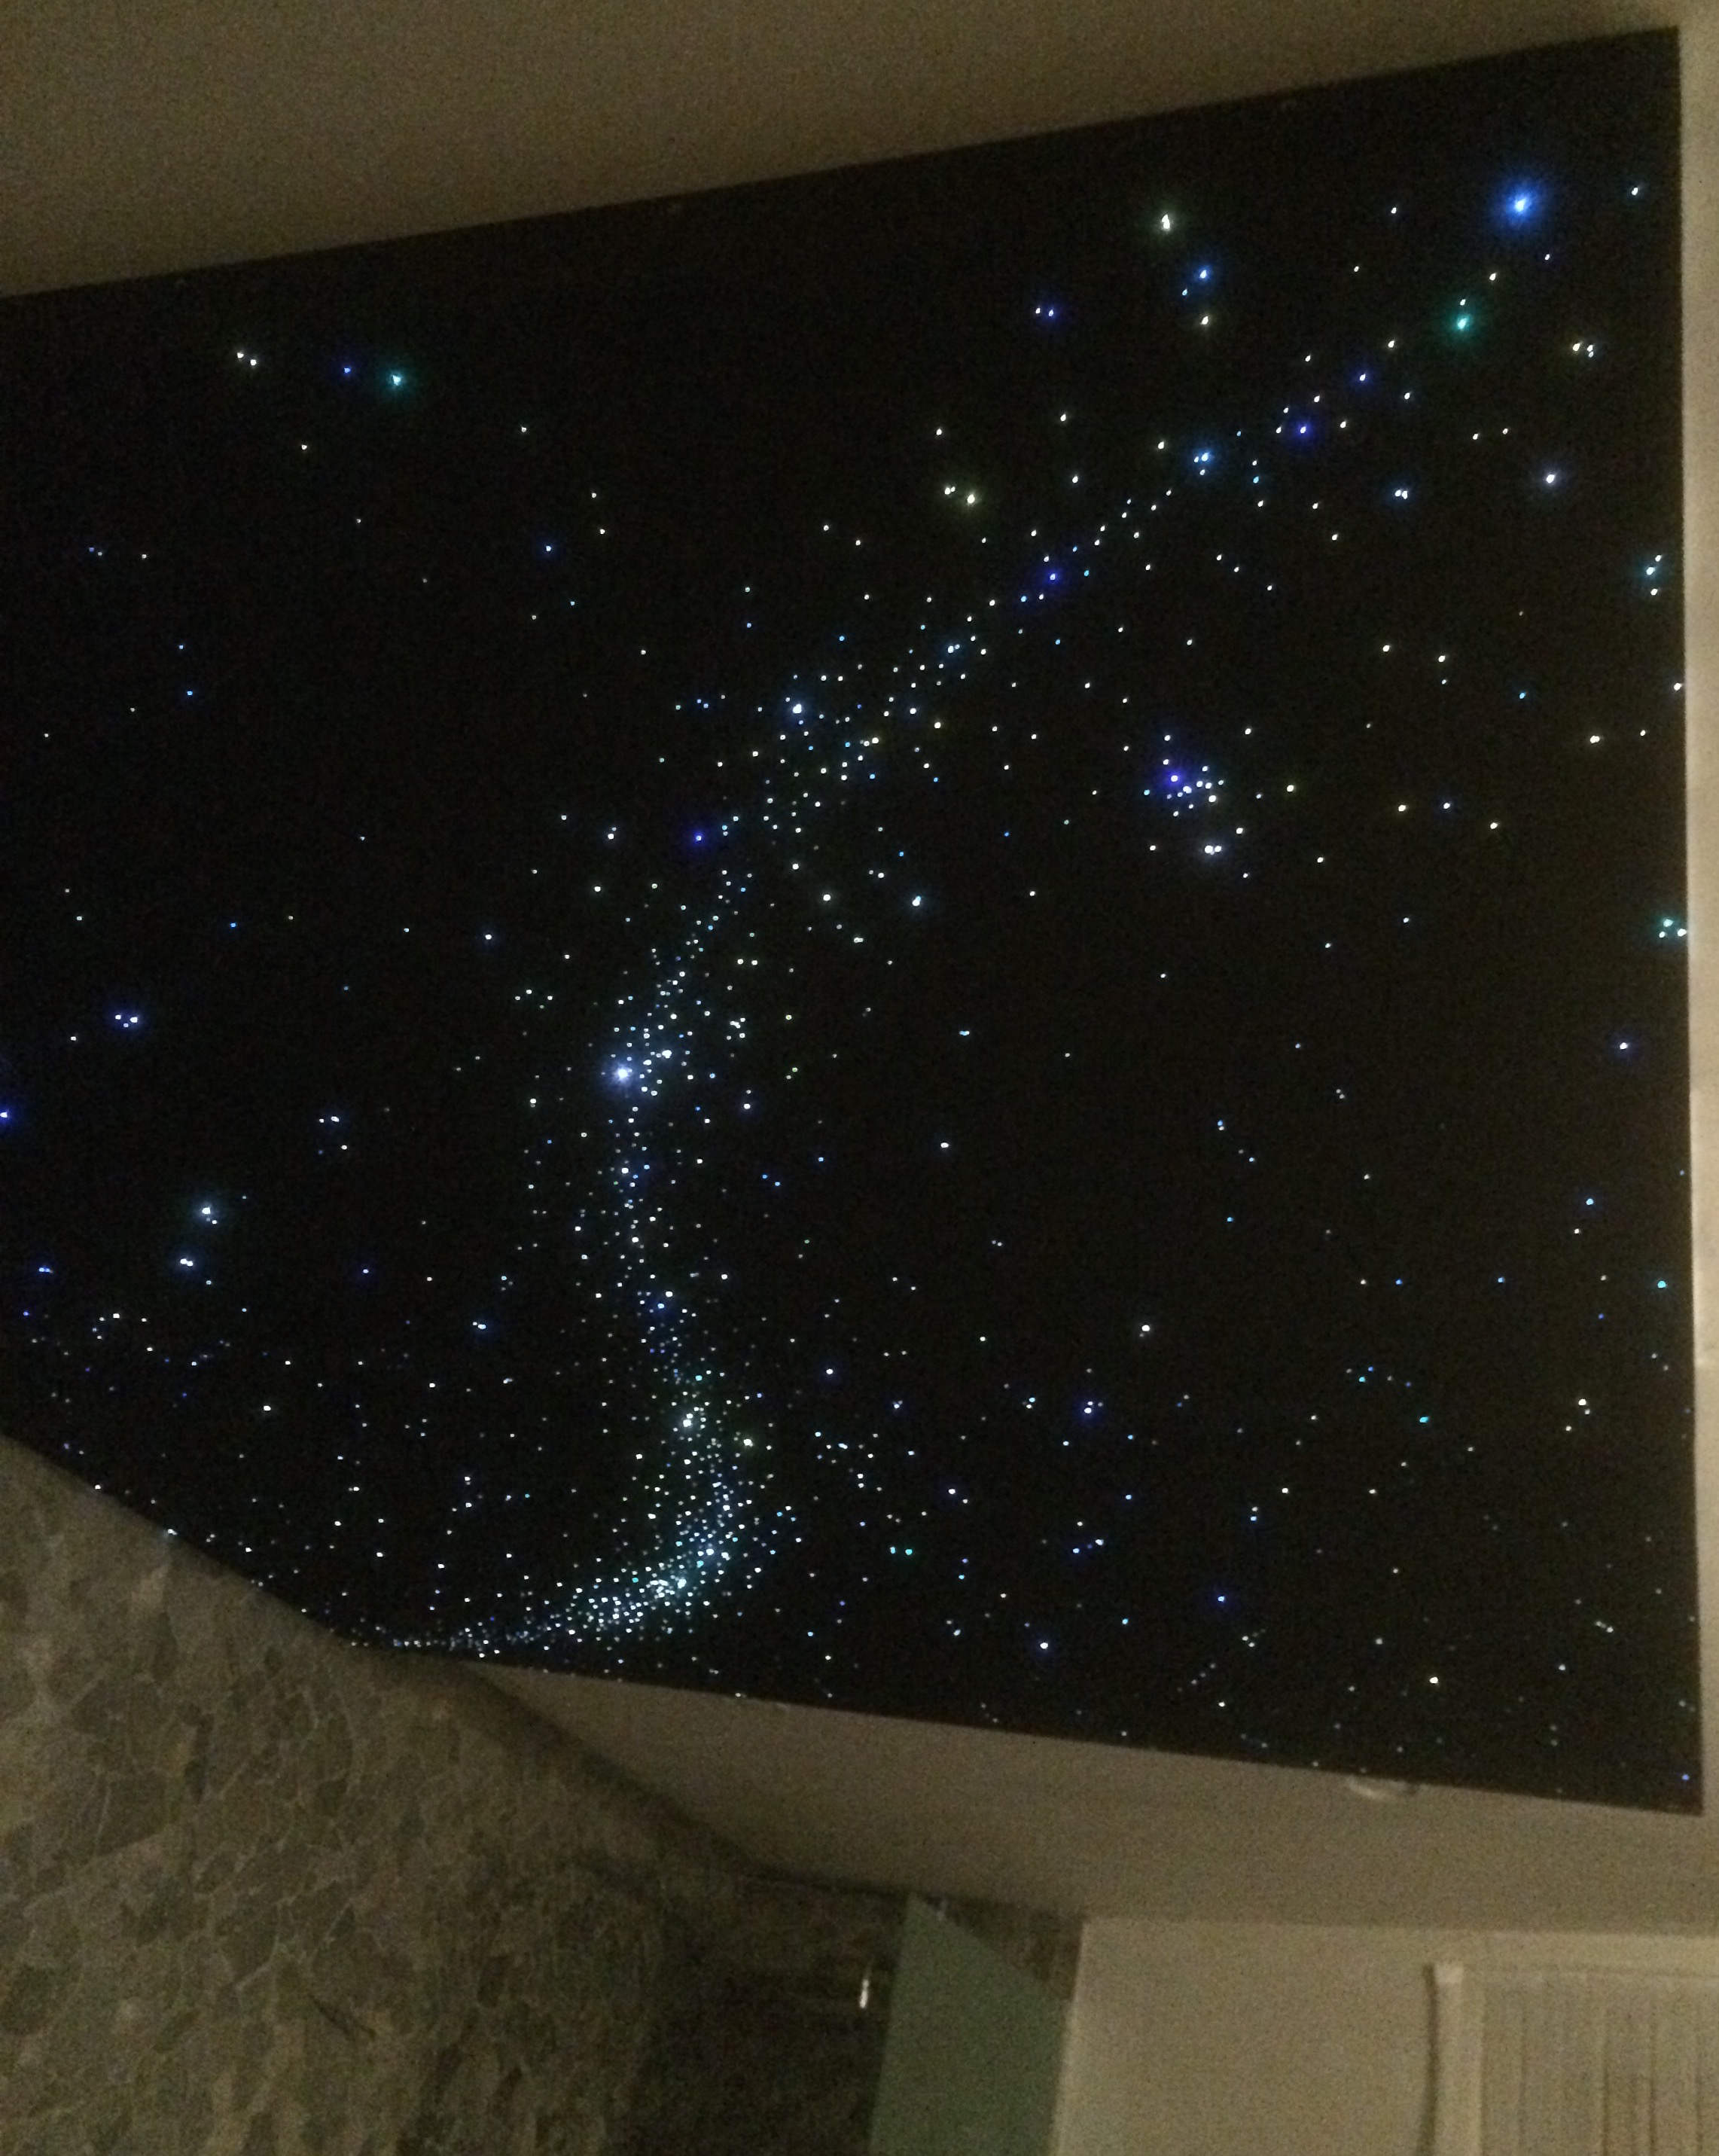 Watch Night Sky In Your Room With Star Effect Ceiling Lights ...